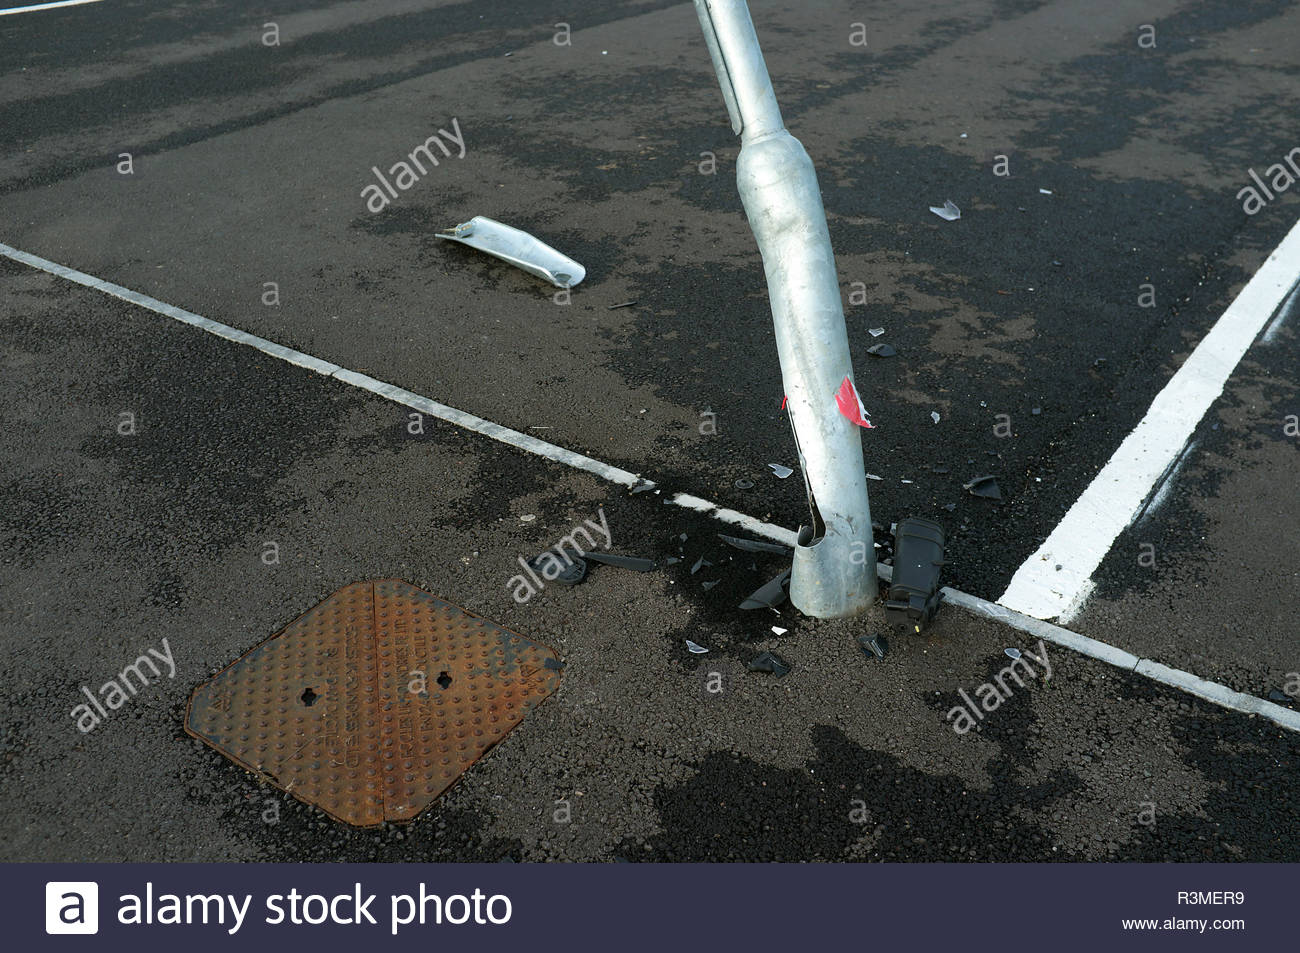 Car park damage - a bent lamp post with vehicle debris at base. UK. Stock Photo